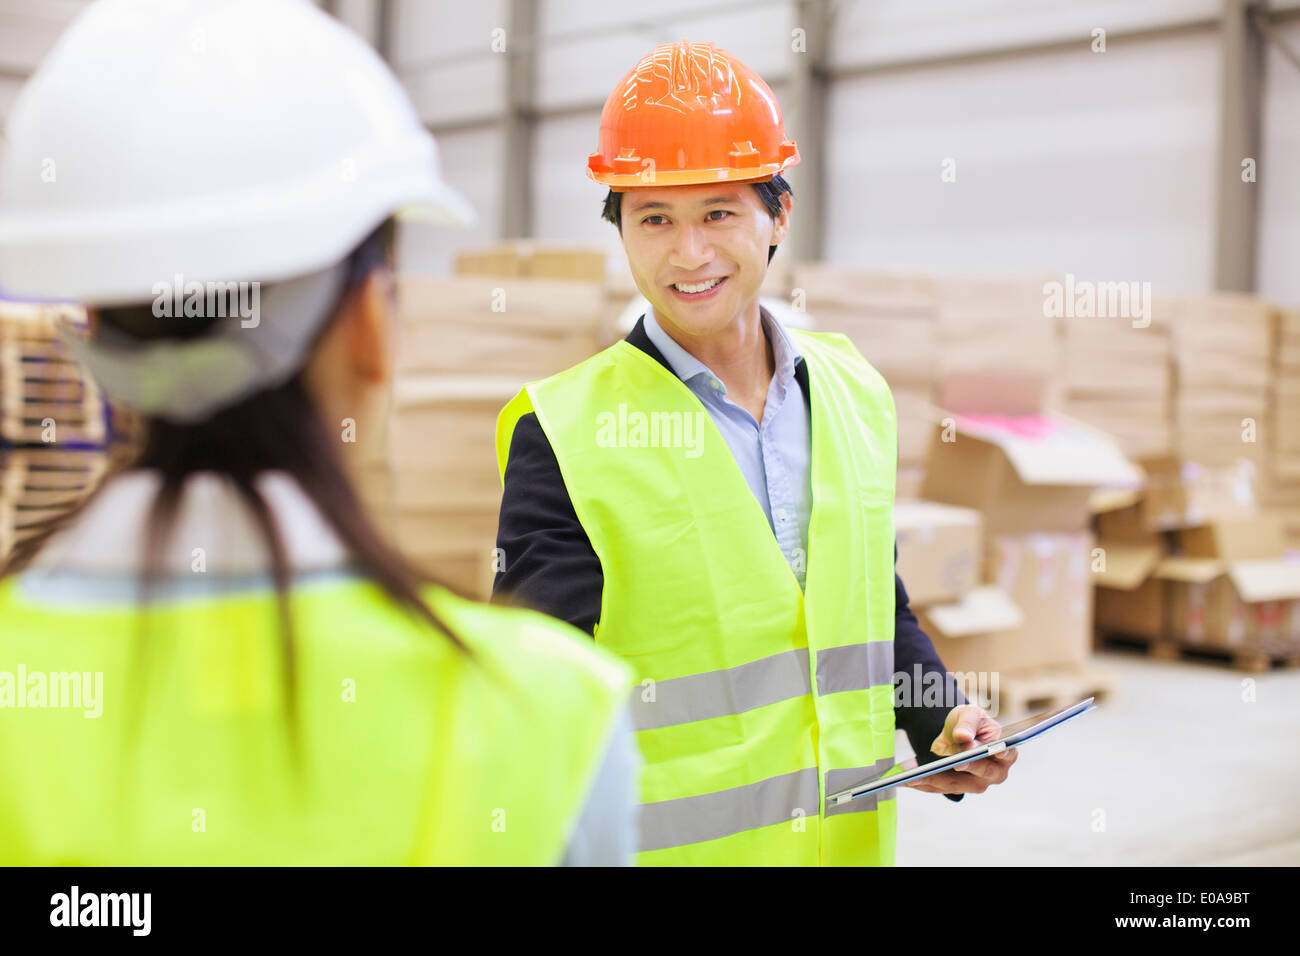 Supervisor shaking hands with trainee in distribution warehouse - Stock Image